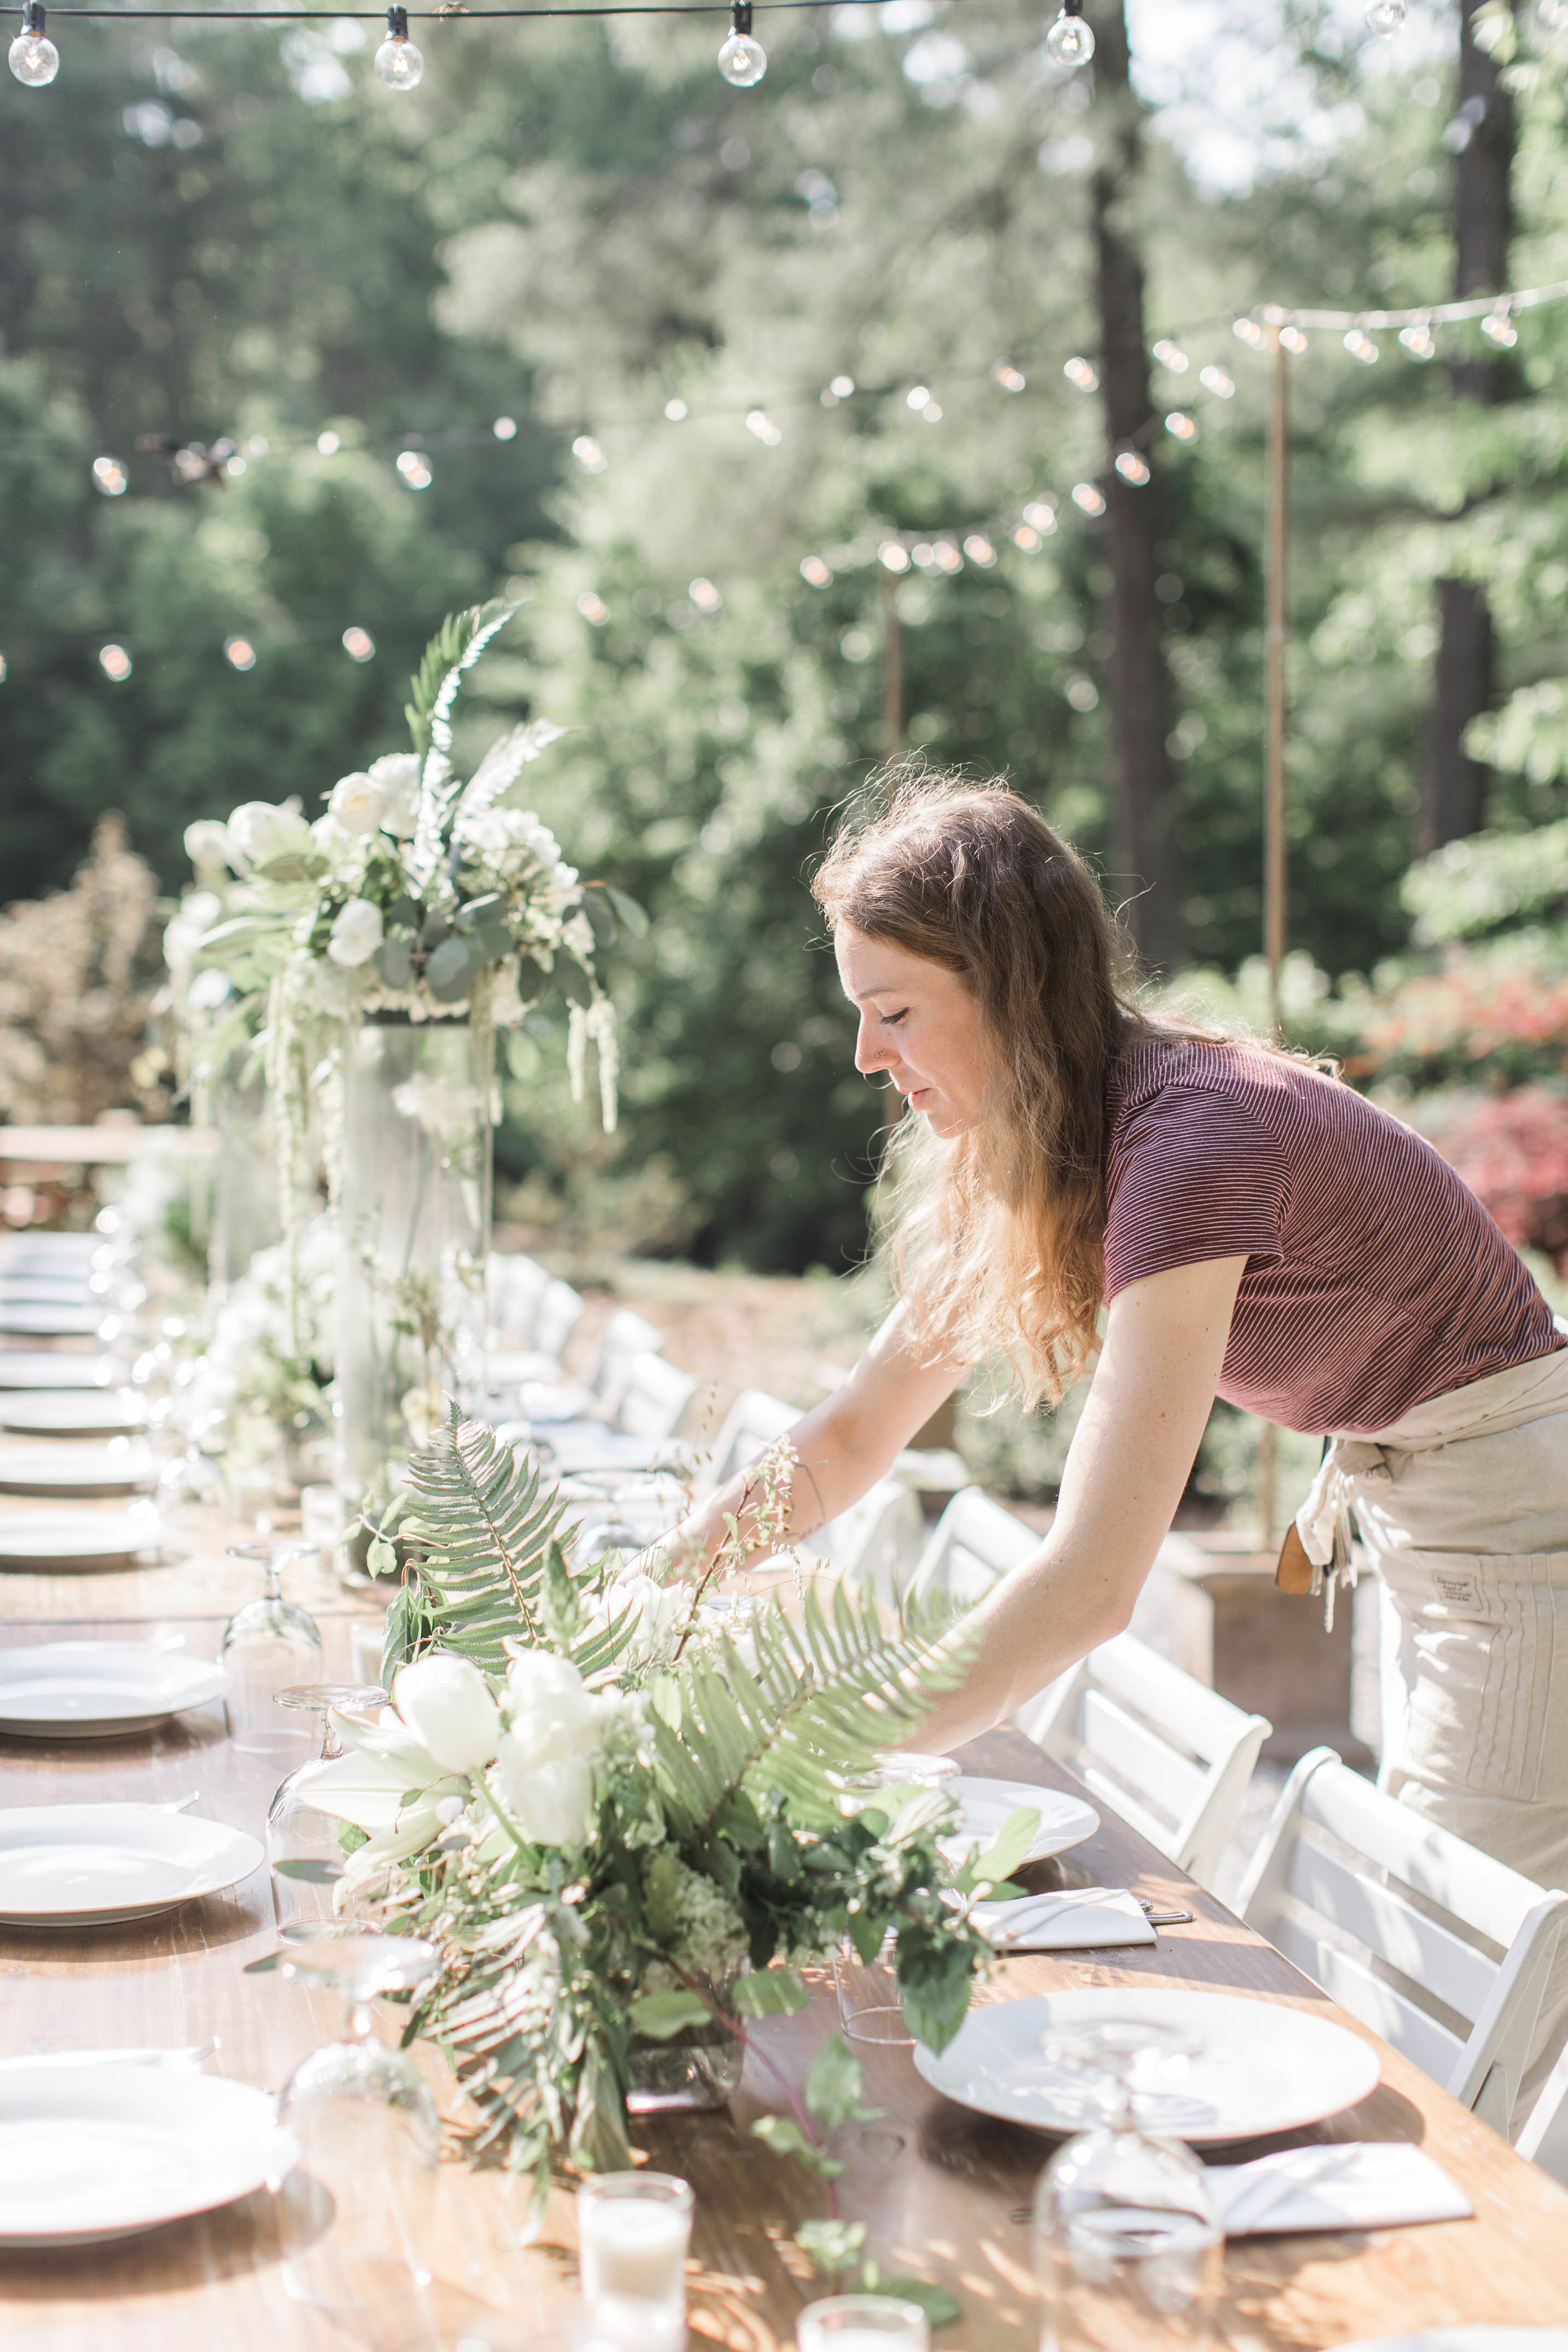 Welcome! I'm Madelaine... - I'm the owner and designer at Mood Fleuriste. My flowers and I travel throughout North Carolina and North Georgia to bring joy and wonder to the wonderful people I work with!I got started working with flowers when my event-planner mom, a real-life version of Leslie Knope, called upon me to help at a wedding that got too large for the bride to do the flowers DIY. Ever since then we've been working together to create beautiful events for our clients in North Georgia, and now I'm expanding to the triangle where I live with my husband Derek and dog Bosco.I'm truly an introvert at heart, and flowers allow me to show who I am to the world. I have unmanageably frizzy blondish/reddish/brownish hair which seems to change color depending on my mood, and is part of the name for my business.I love all things Seinfeld, making homemade pasta, playing (and failing) at Mario Brothers with my husband, and just living an honest and gratifying life with the people I love the most.Now that you know a little bit about me, I can't wait to meet you!Thank you immensely to Lindsey LaRue Photography for taking and editing the lovely photo of me at a recent wedding.